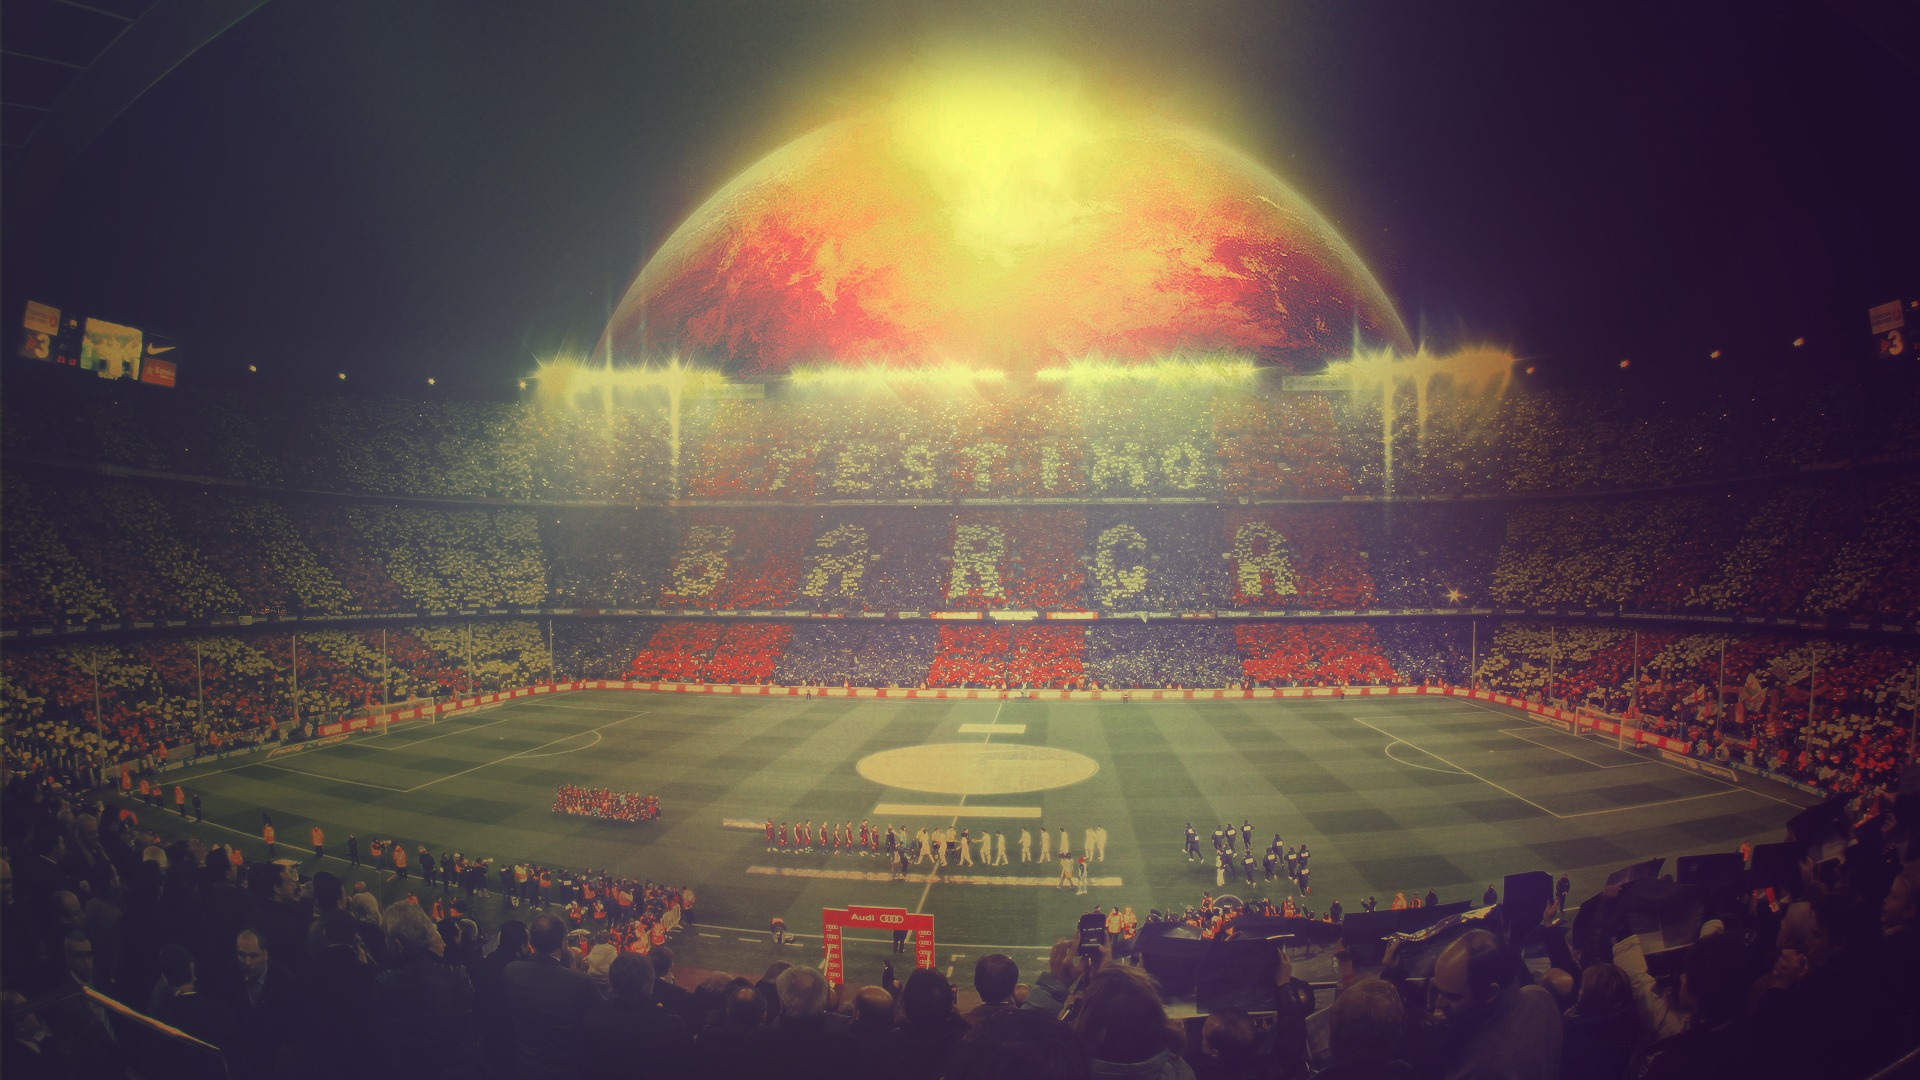 FC Barcelona stadium, the Camp Nou wallpaper in 2013-2014